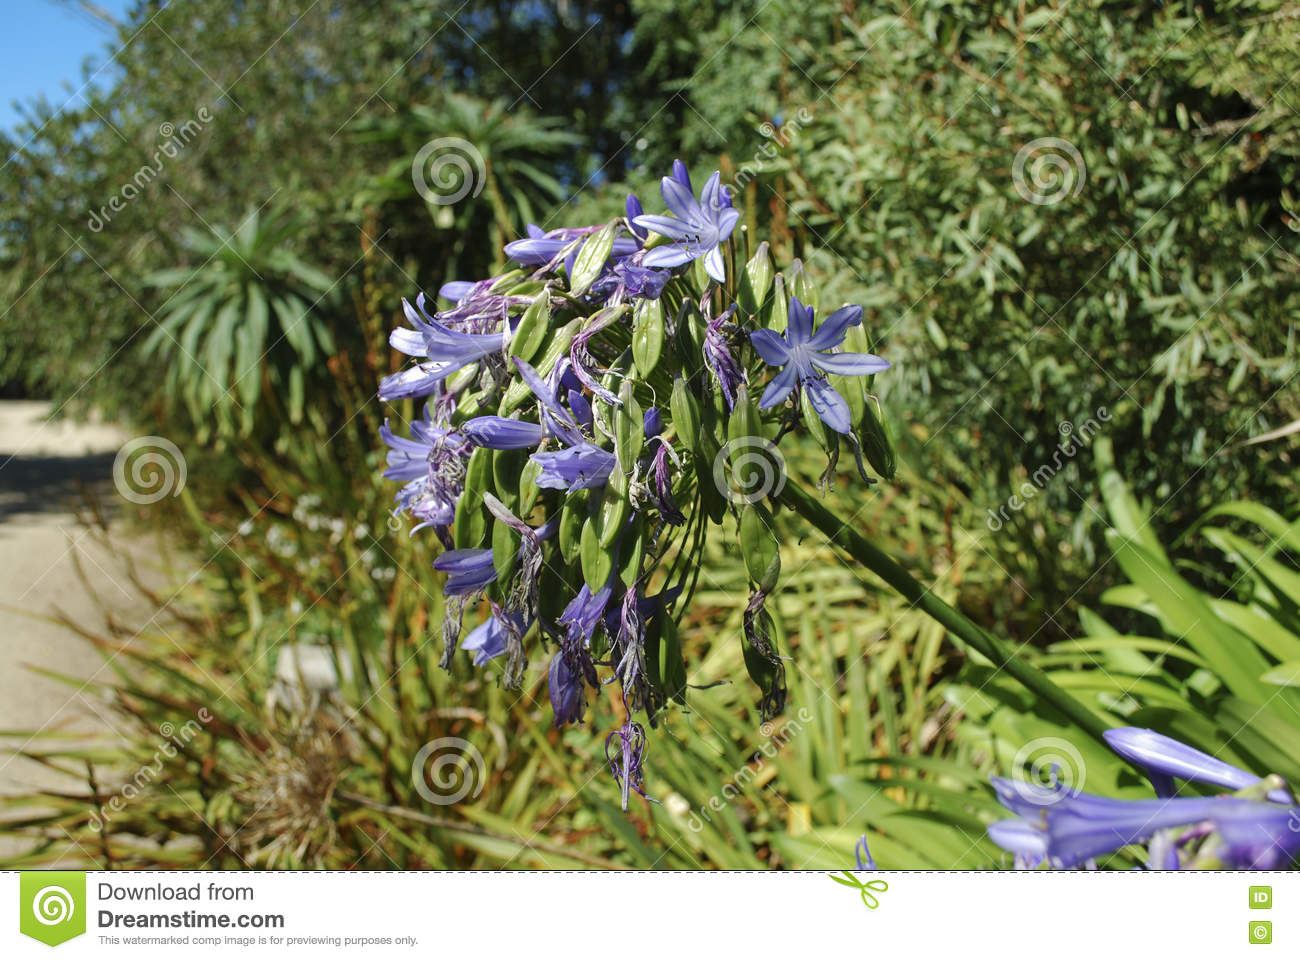 Blue flowers and seeds of lily of the nile stock photo image of lily of the nile agapanthus praecox subsp praecox azure bloom blue flowers and seeds izmirmasajfo